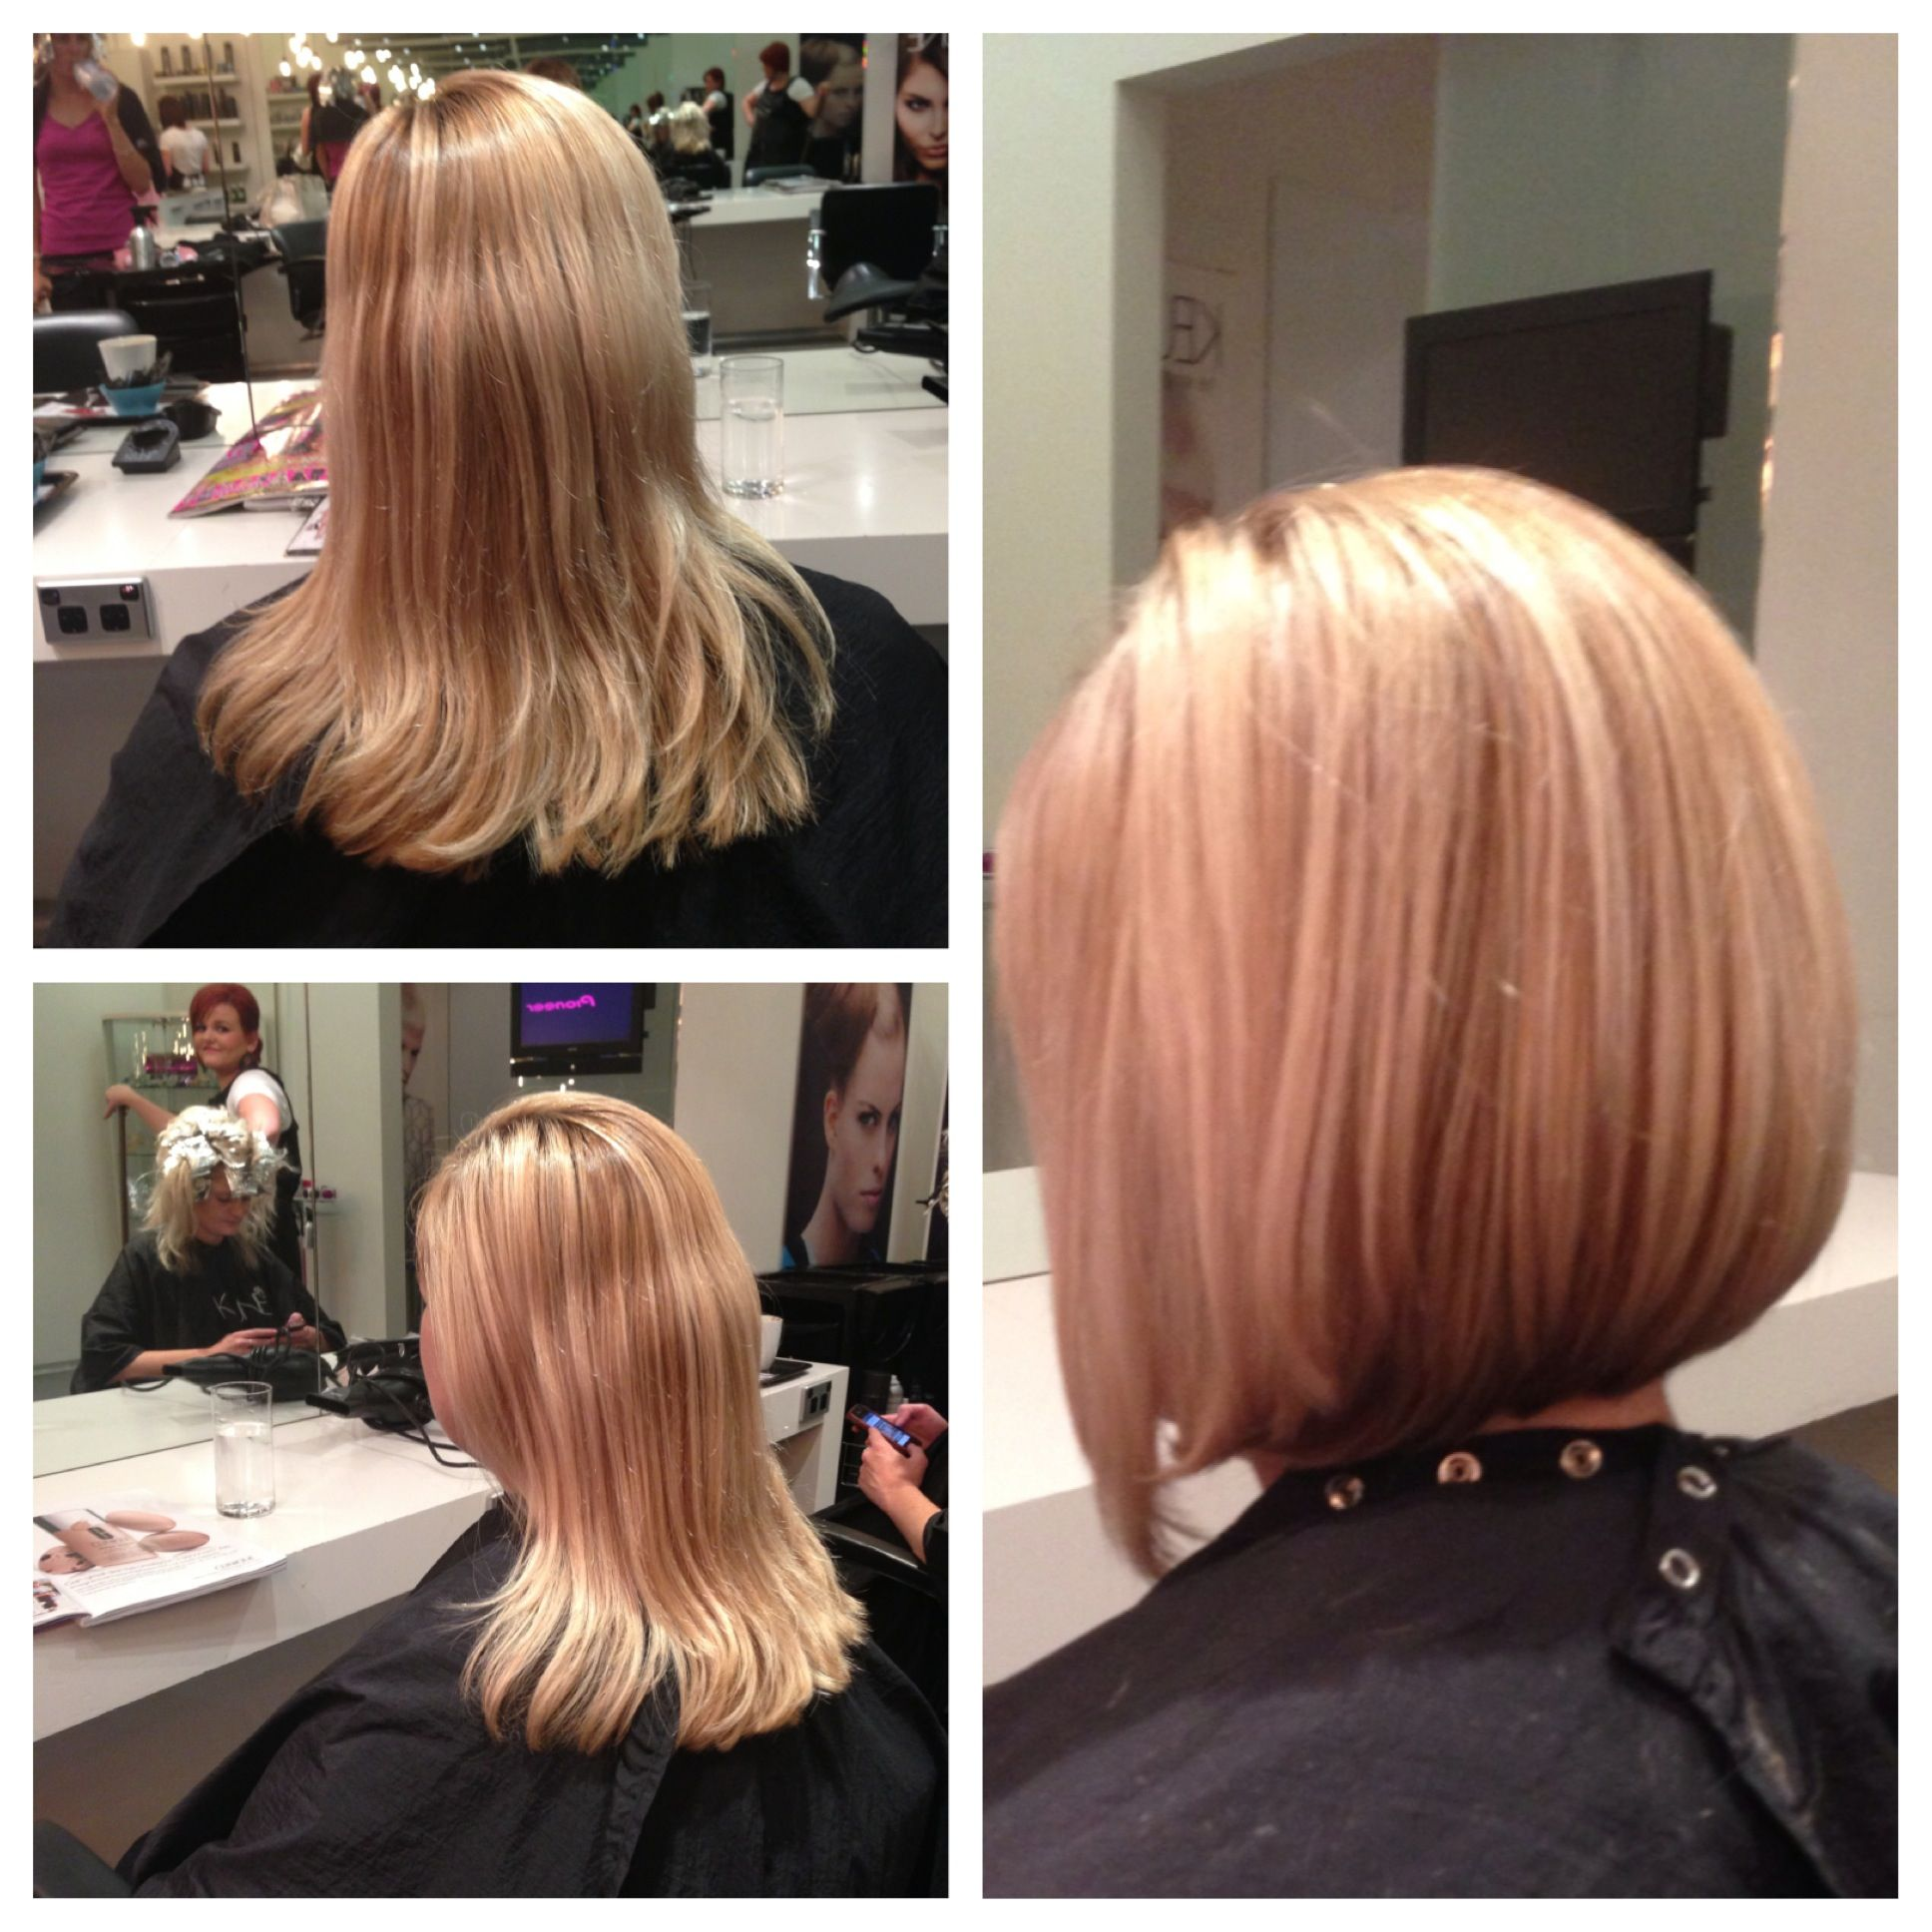 Bob haircut before and after merewether hair studio newcastle bob haircut before and after winobraniefo Choice Image